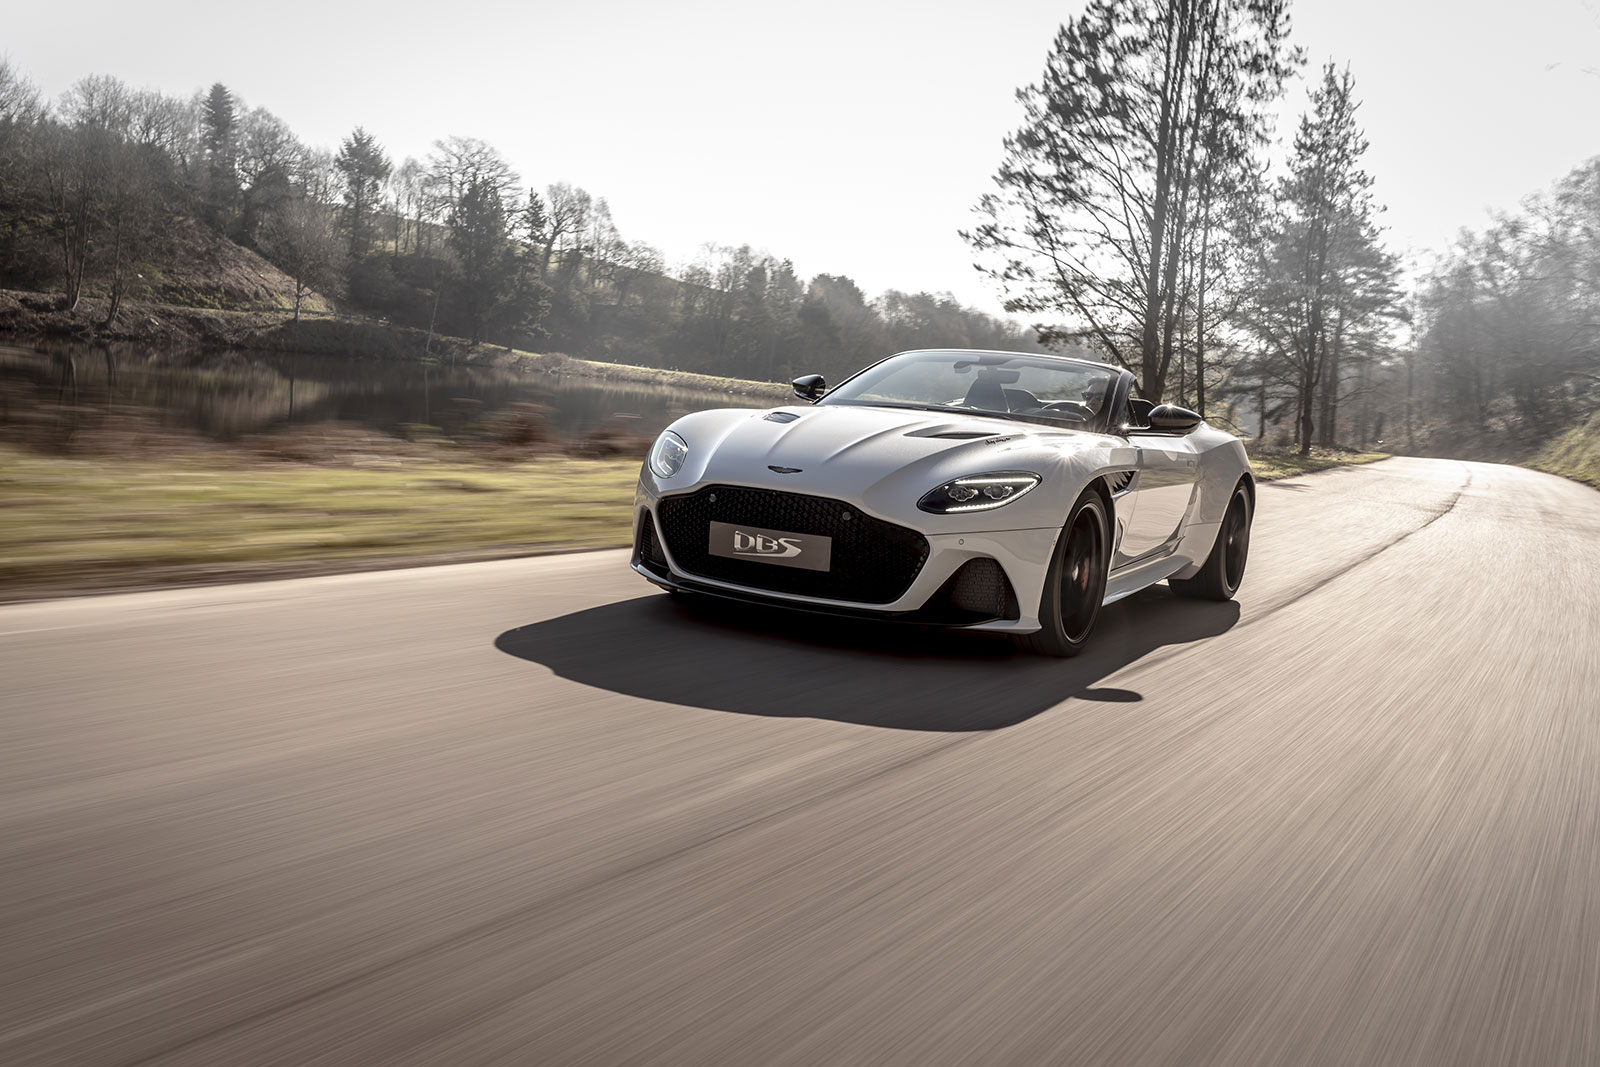 Aston Martin DBS Superleggera Volante - The Ulimate Open Top GT image 1